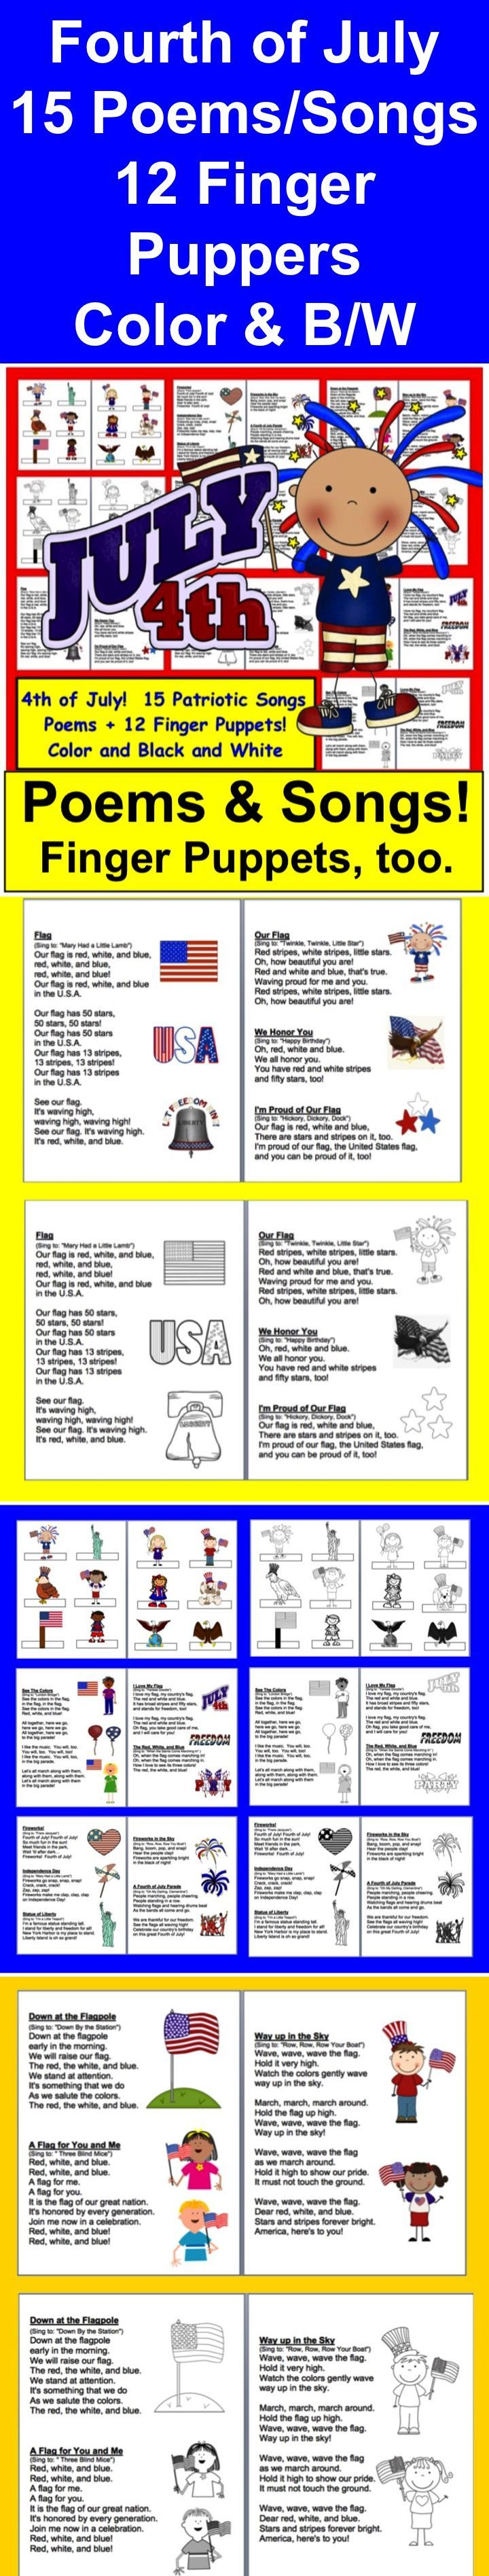 best 25 4th of july songs ideas on pinterest 4th of july music